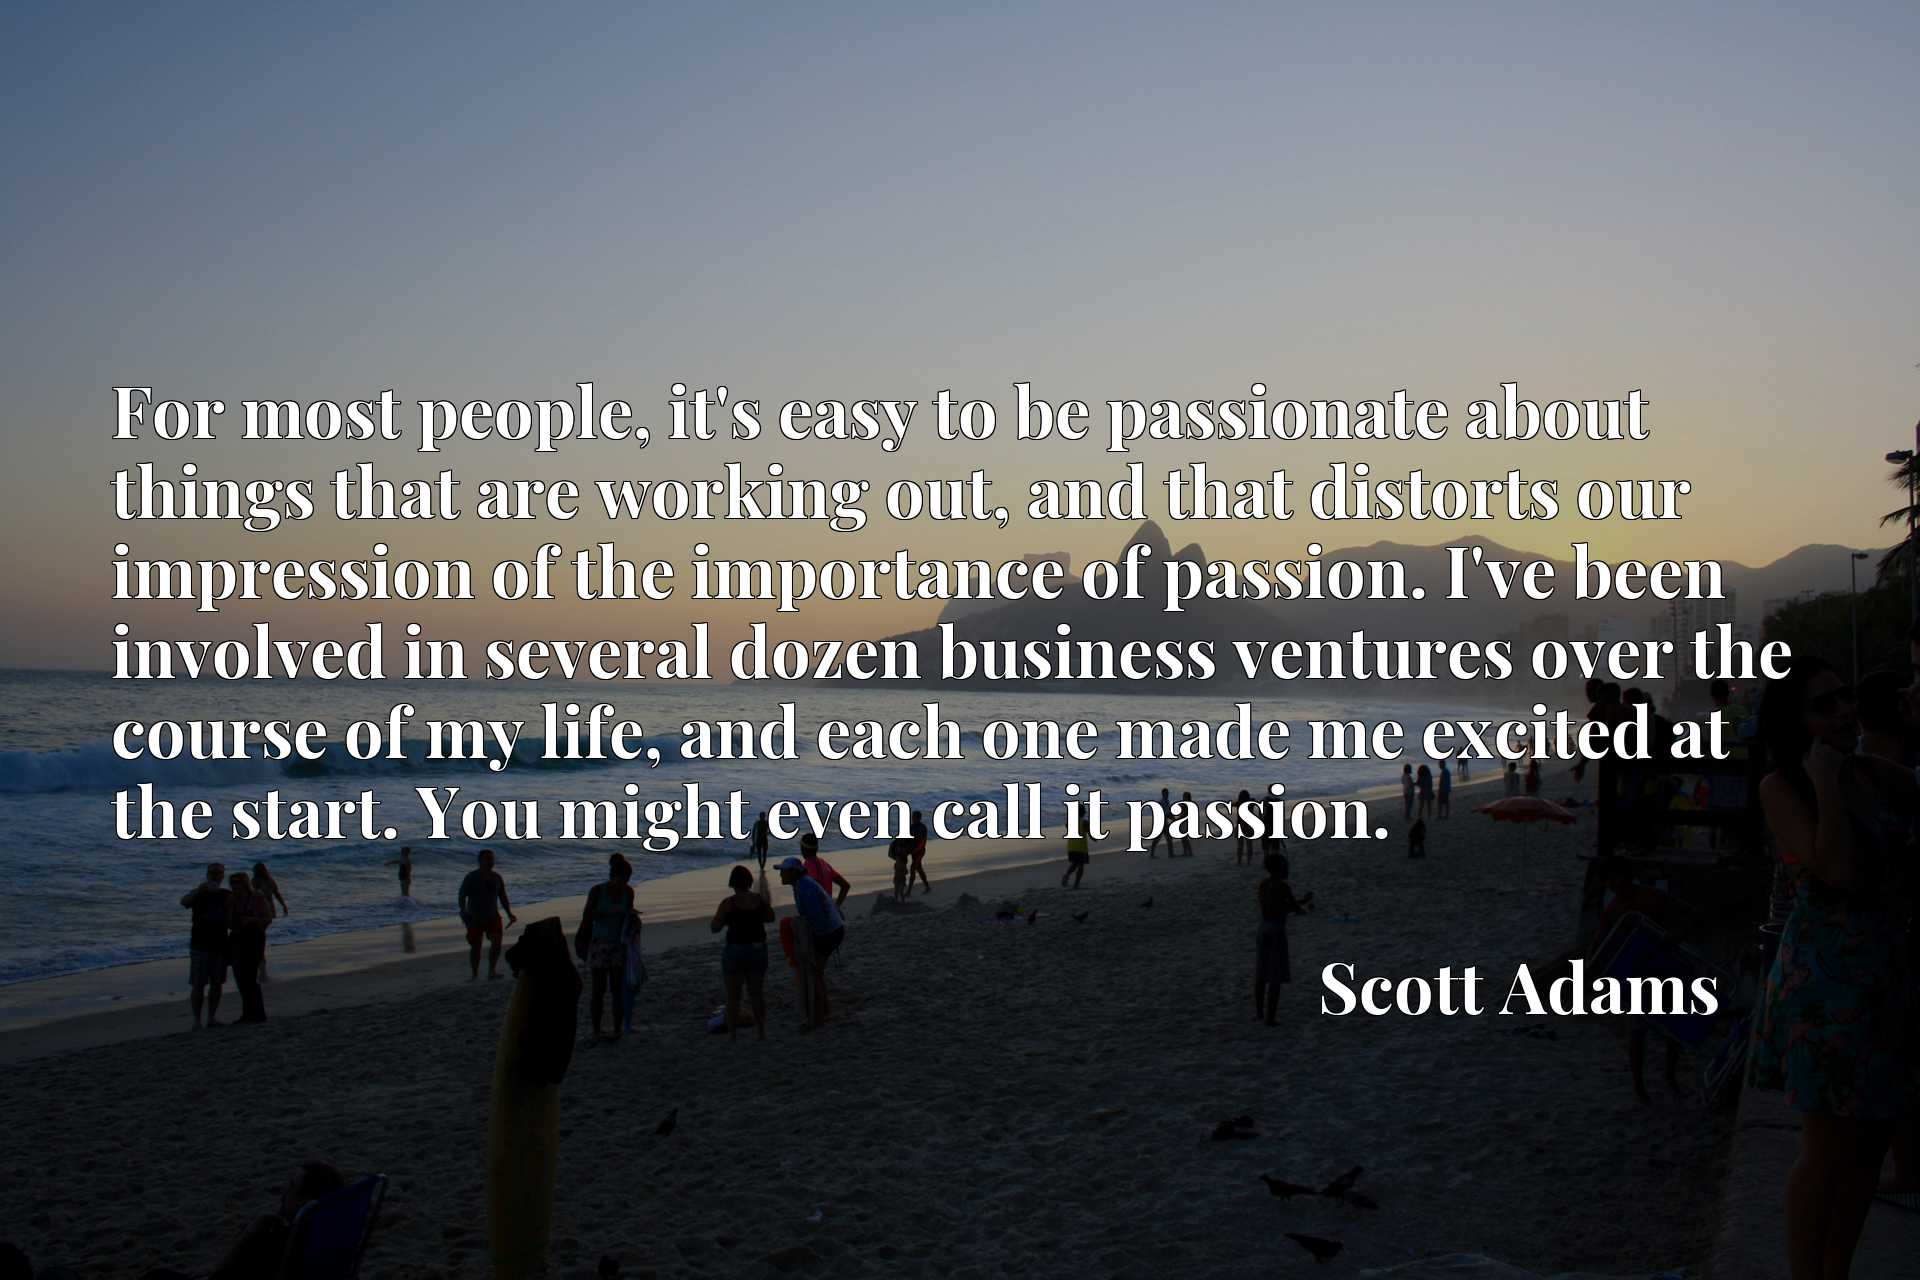 For most people, it's easy to be passionate about things that are working out, and that distorts our impression of the importance of passion. I've been involved in several dozen business ventures over the course of my life, and each one made me excited at the start. You might even call it passion.